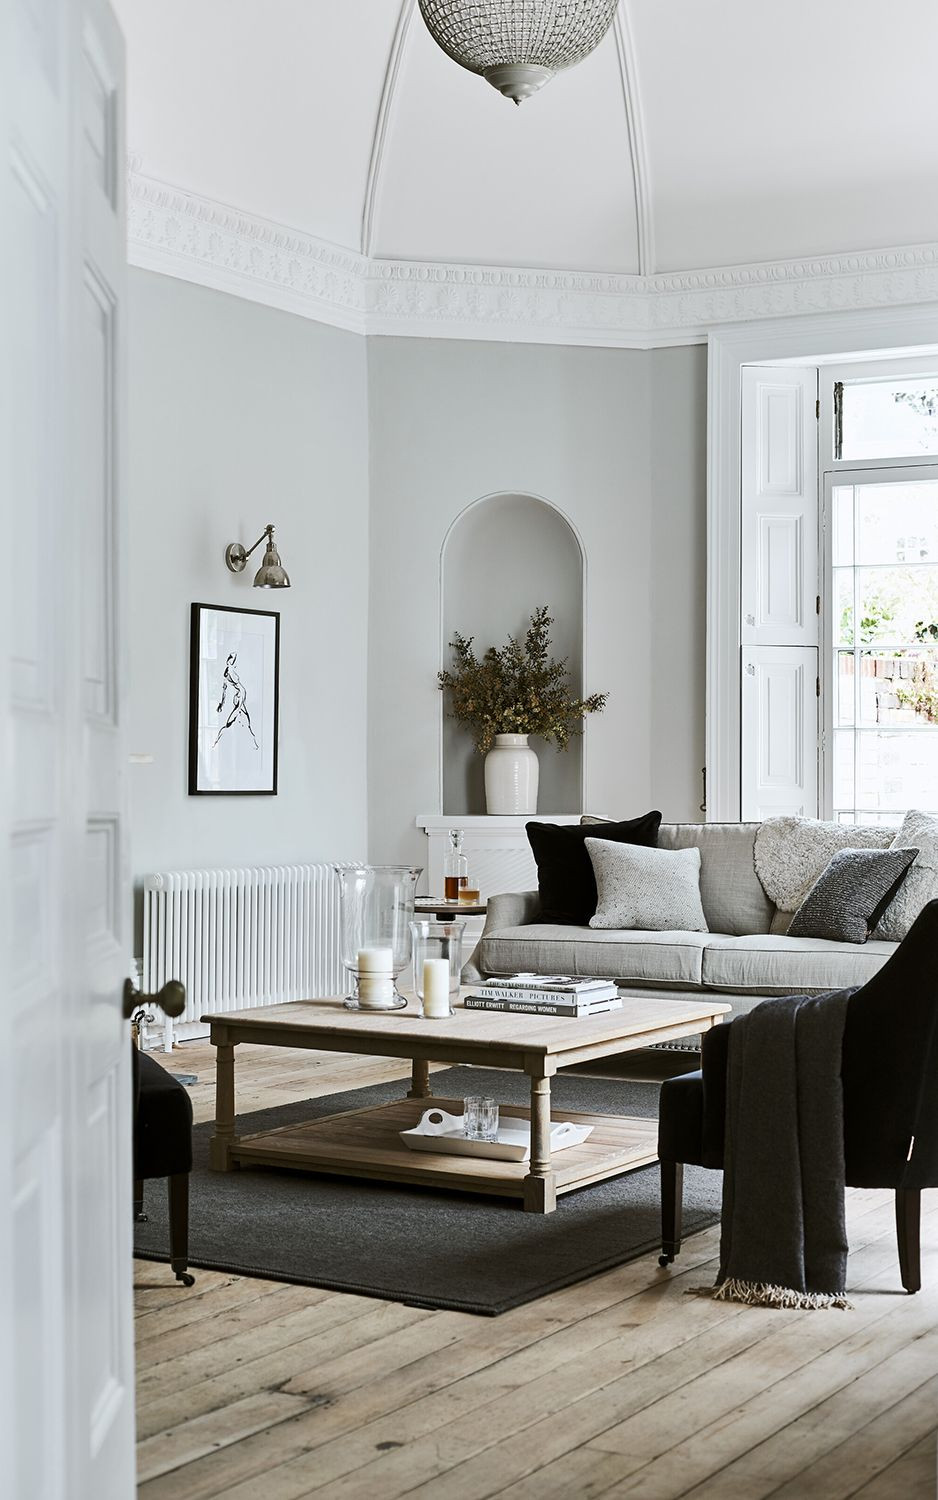 5 top tips for working with neutrals seasonsincolour interiors tips